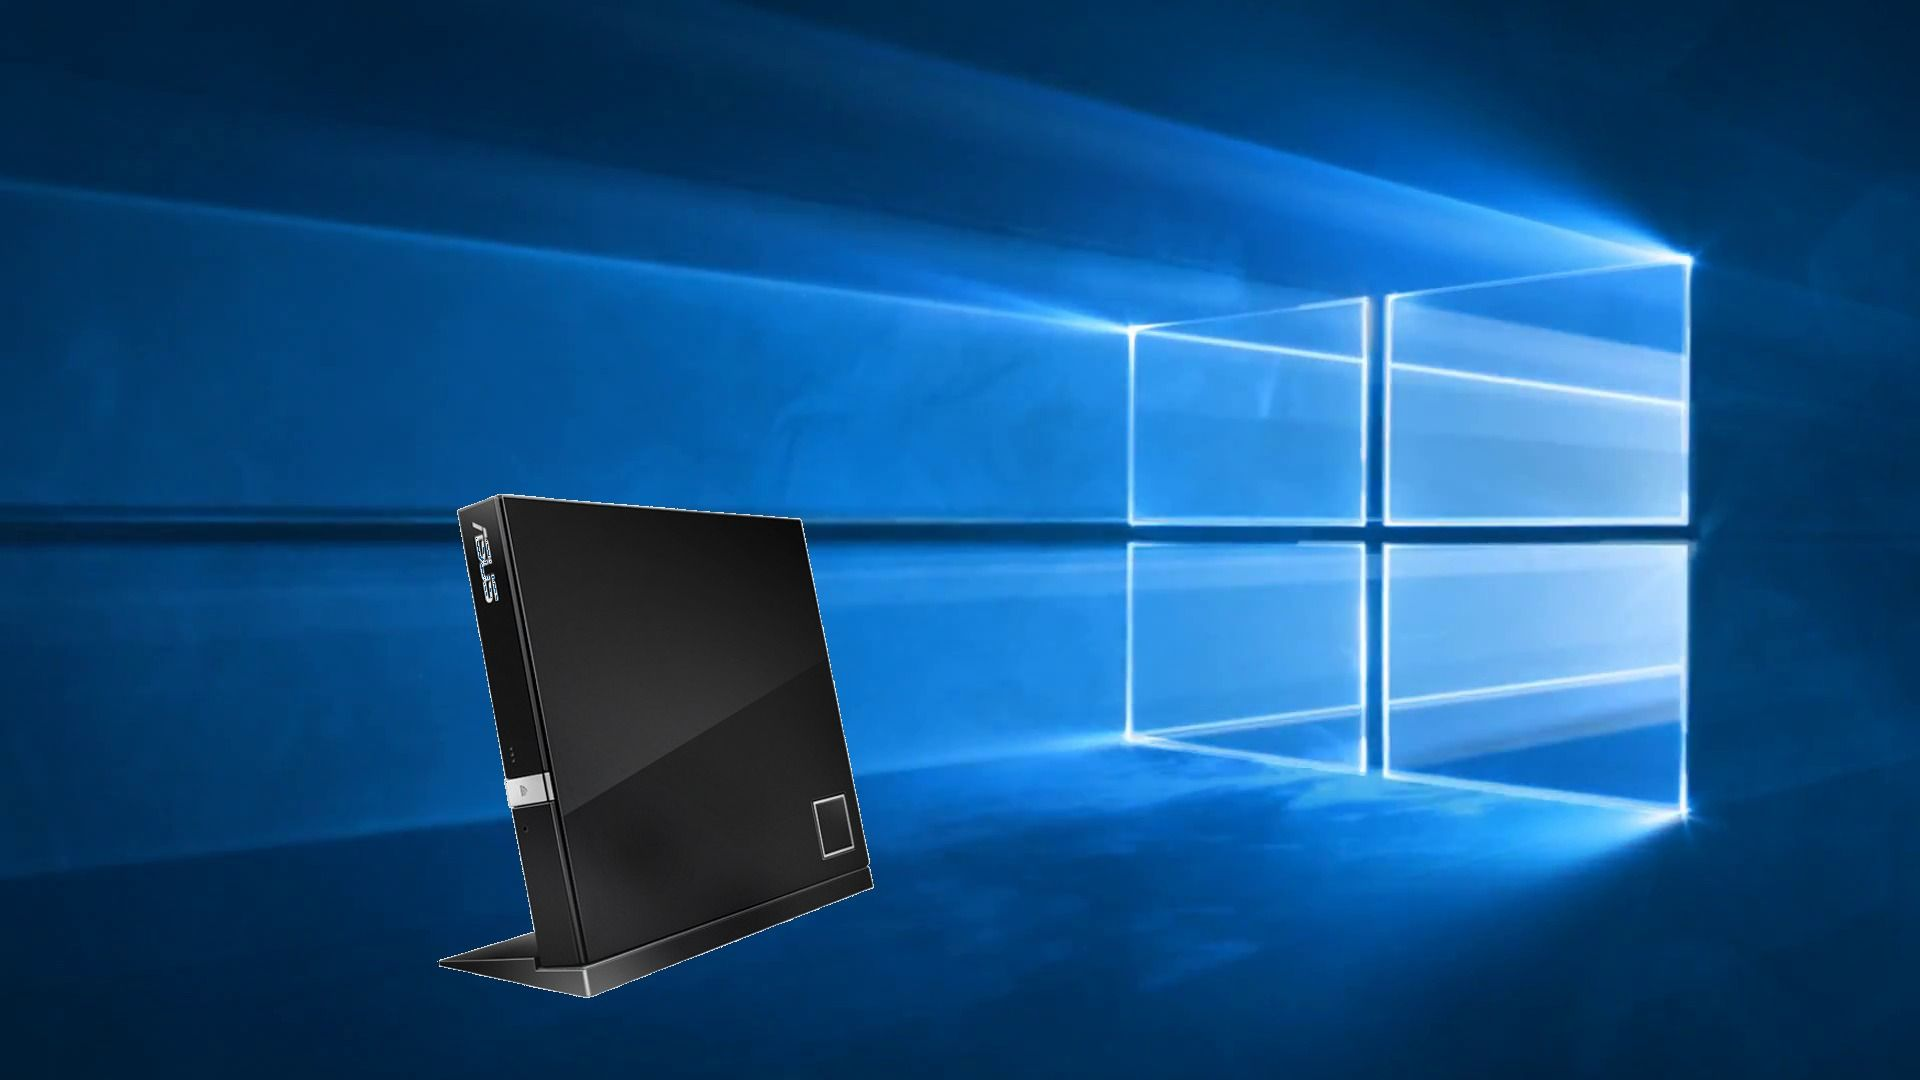 windows 10 ne reconnait plus les lecteurs de blu ray ou dvd externes la bo te id es le. Black Bedroom Furniture Sets. Home Design Ideas